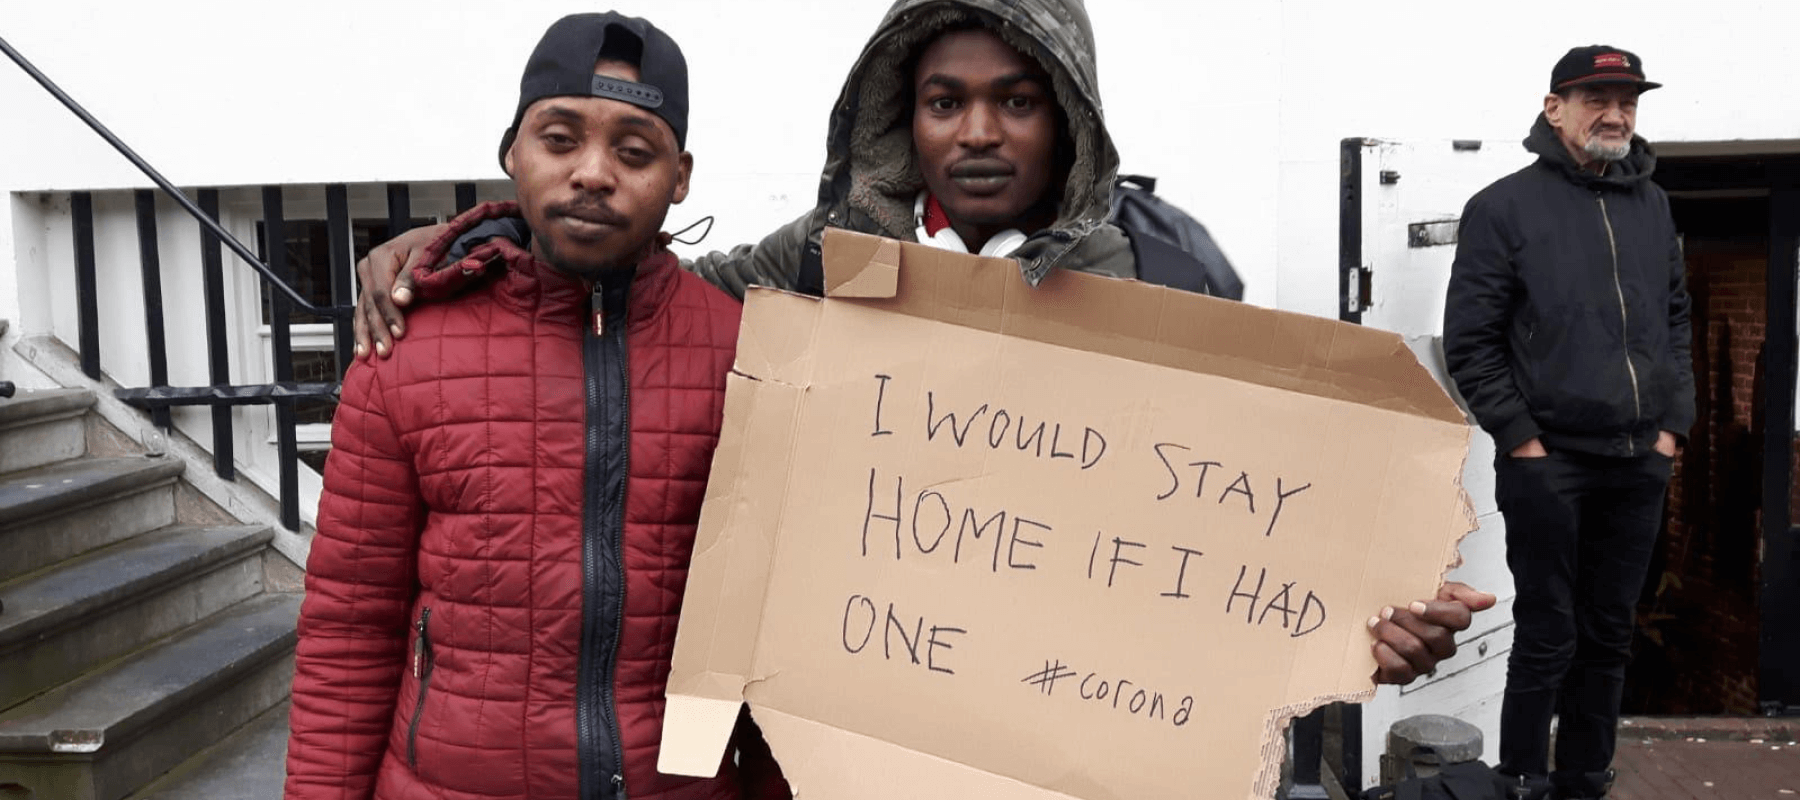 Corona crisis: Do we help the homeless in Europe together?